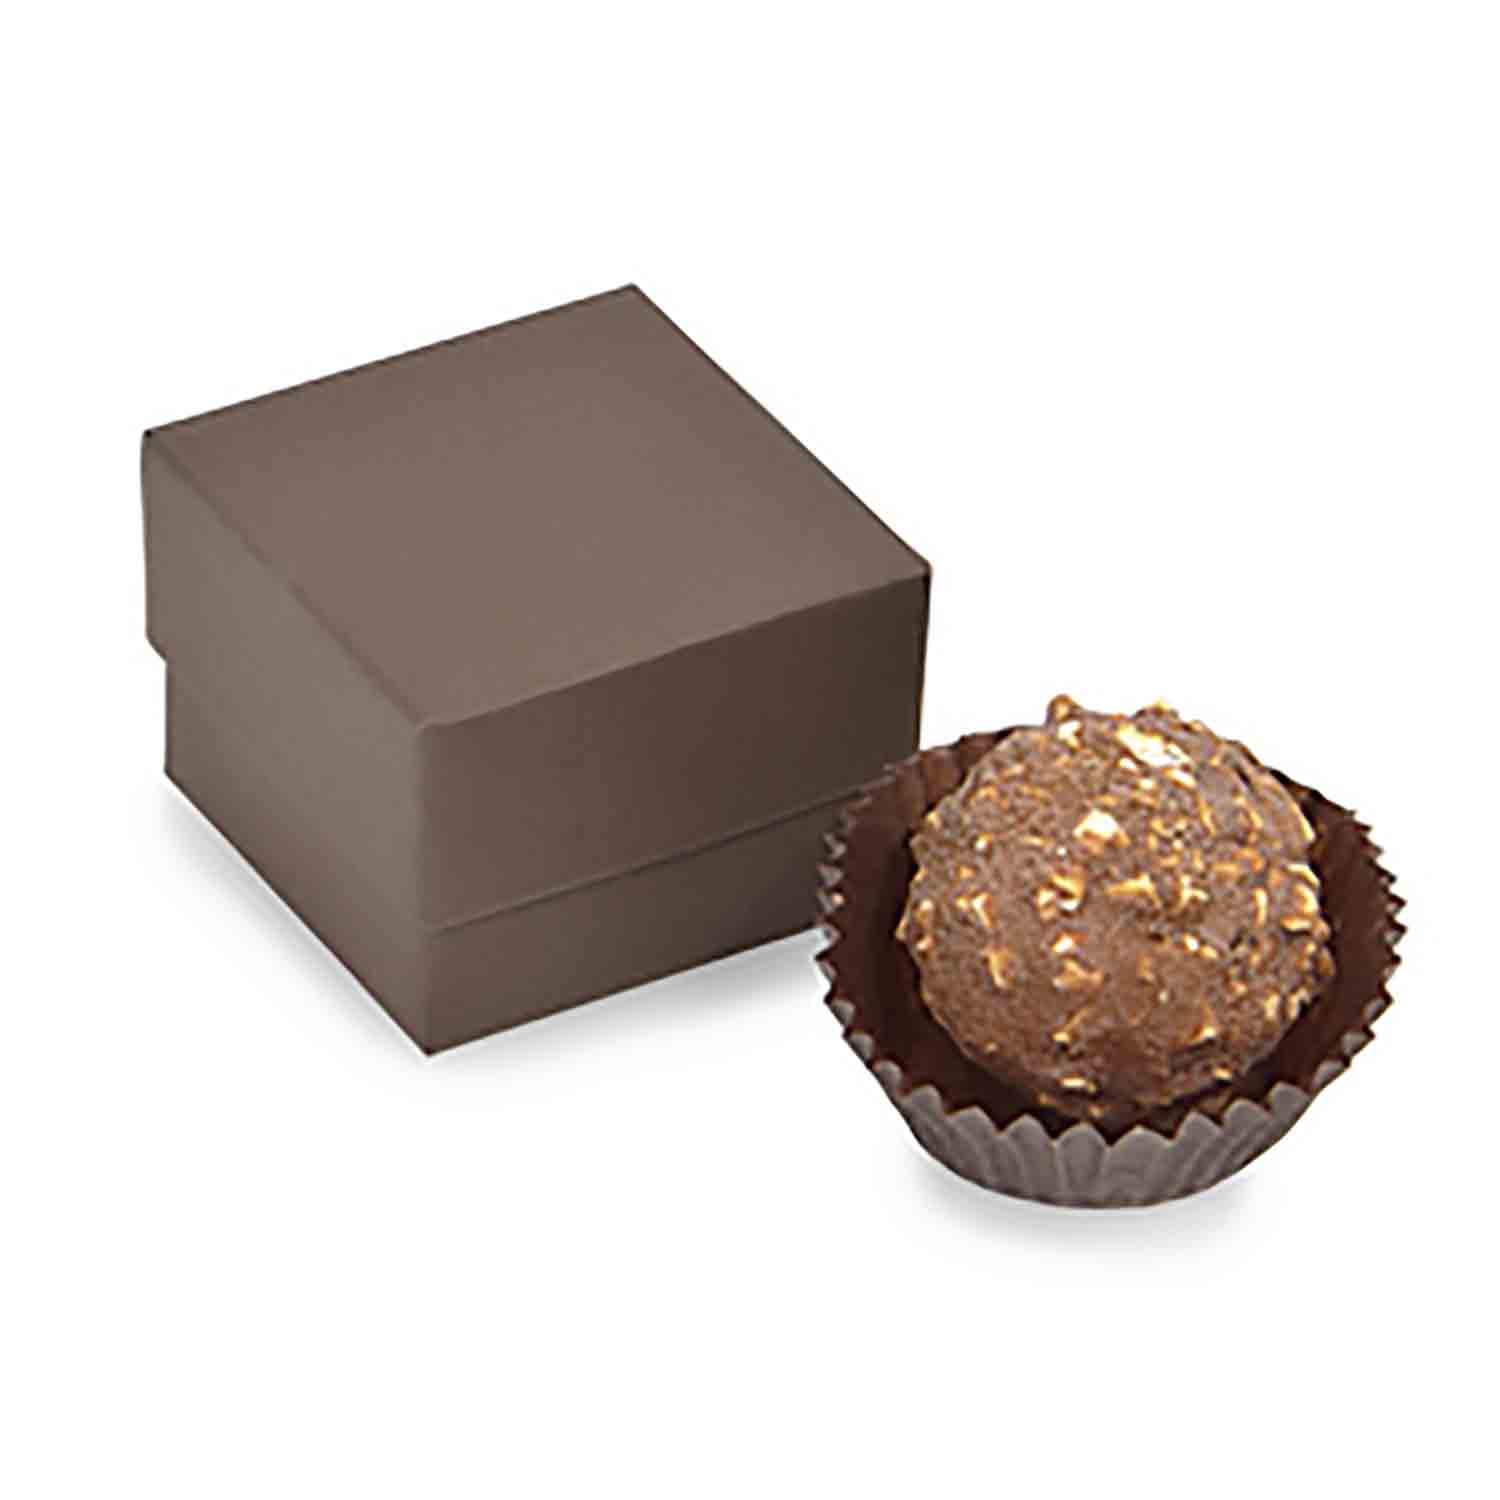 1 Pc. Chocolate Brown Candy Box